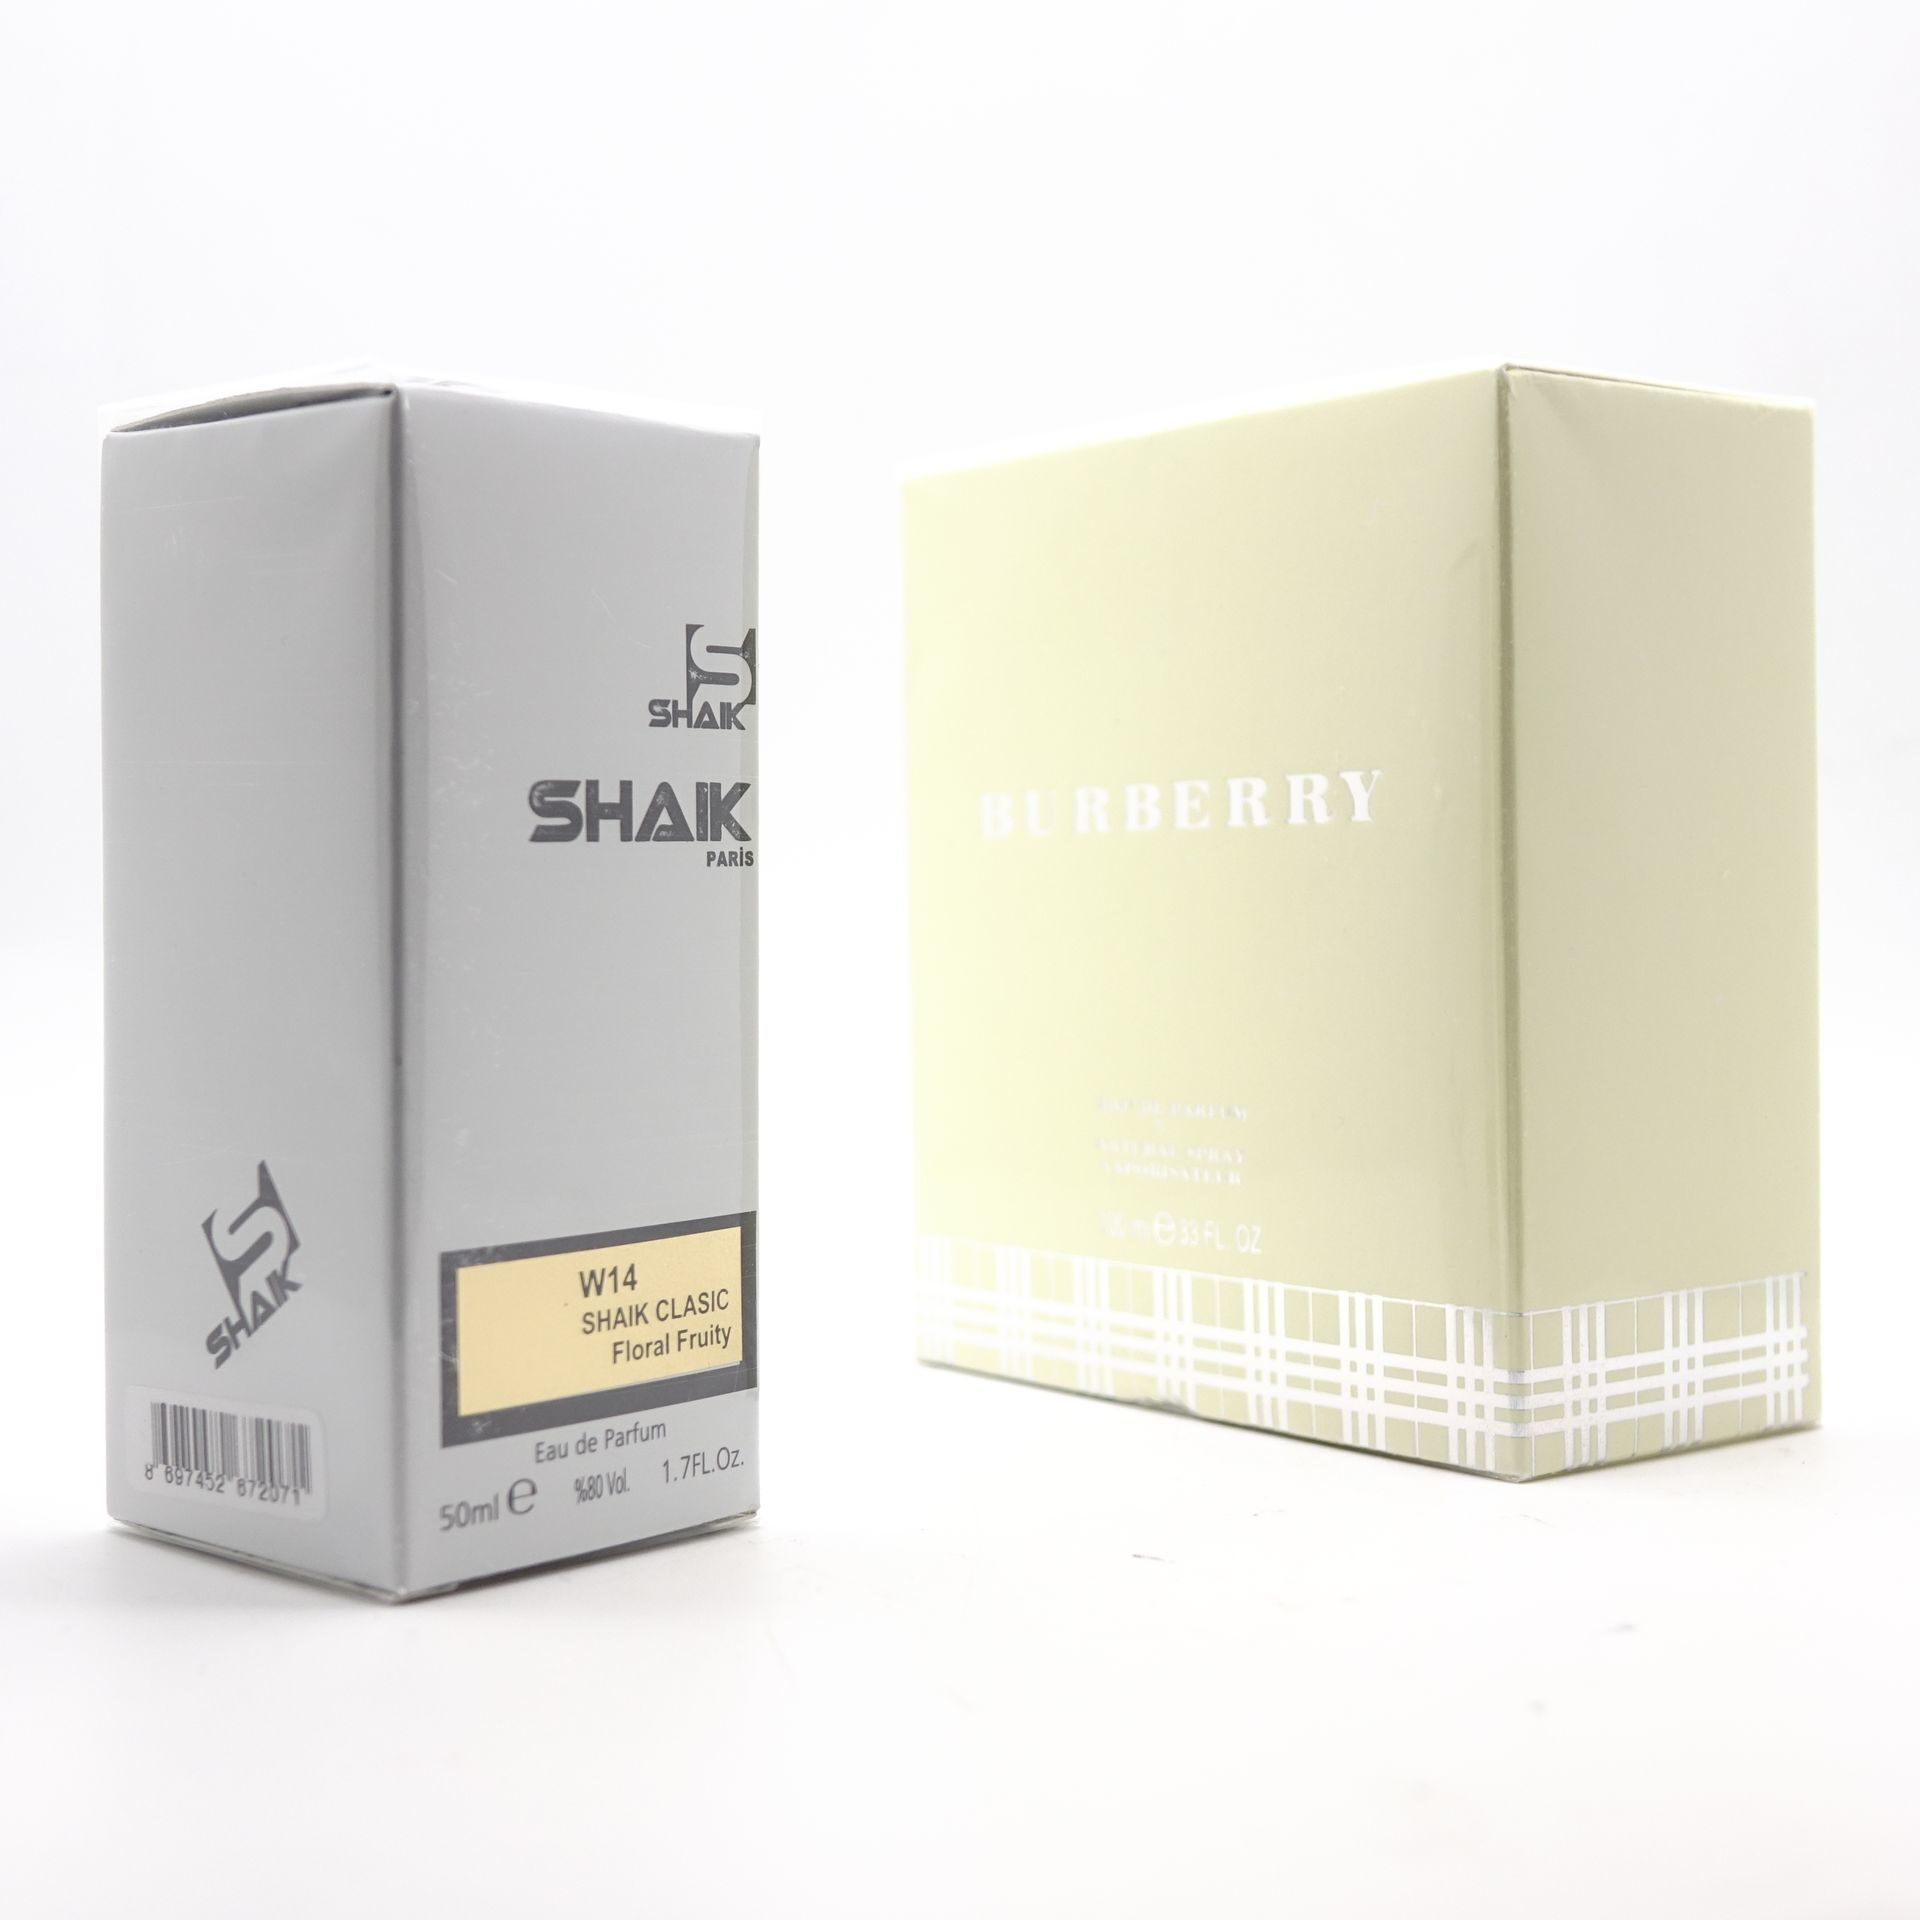 SHAIK W 14 (BURBERRY FOR WOMEN) 50ml